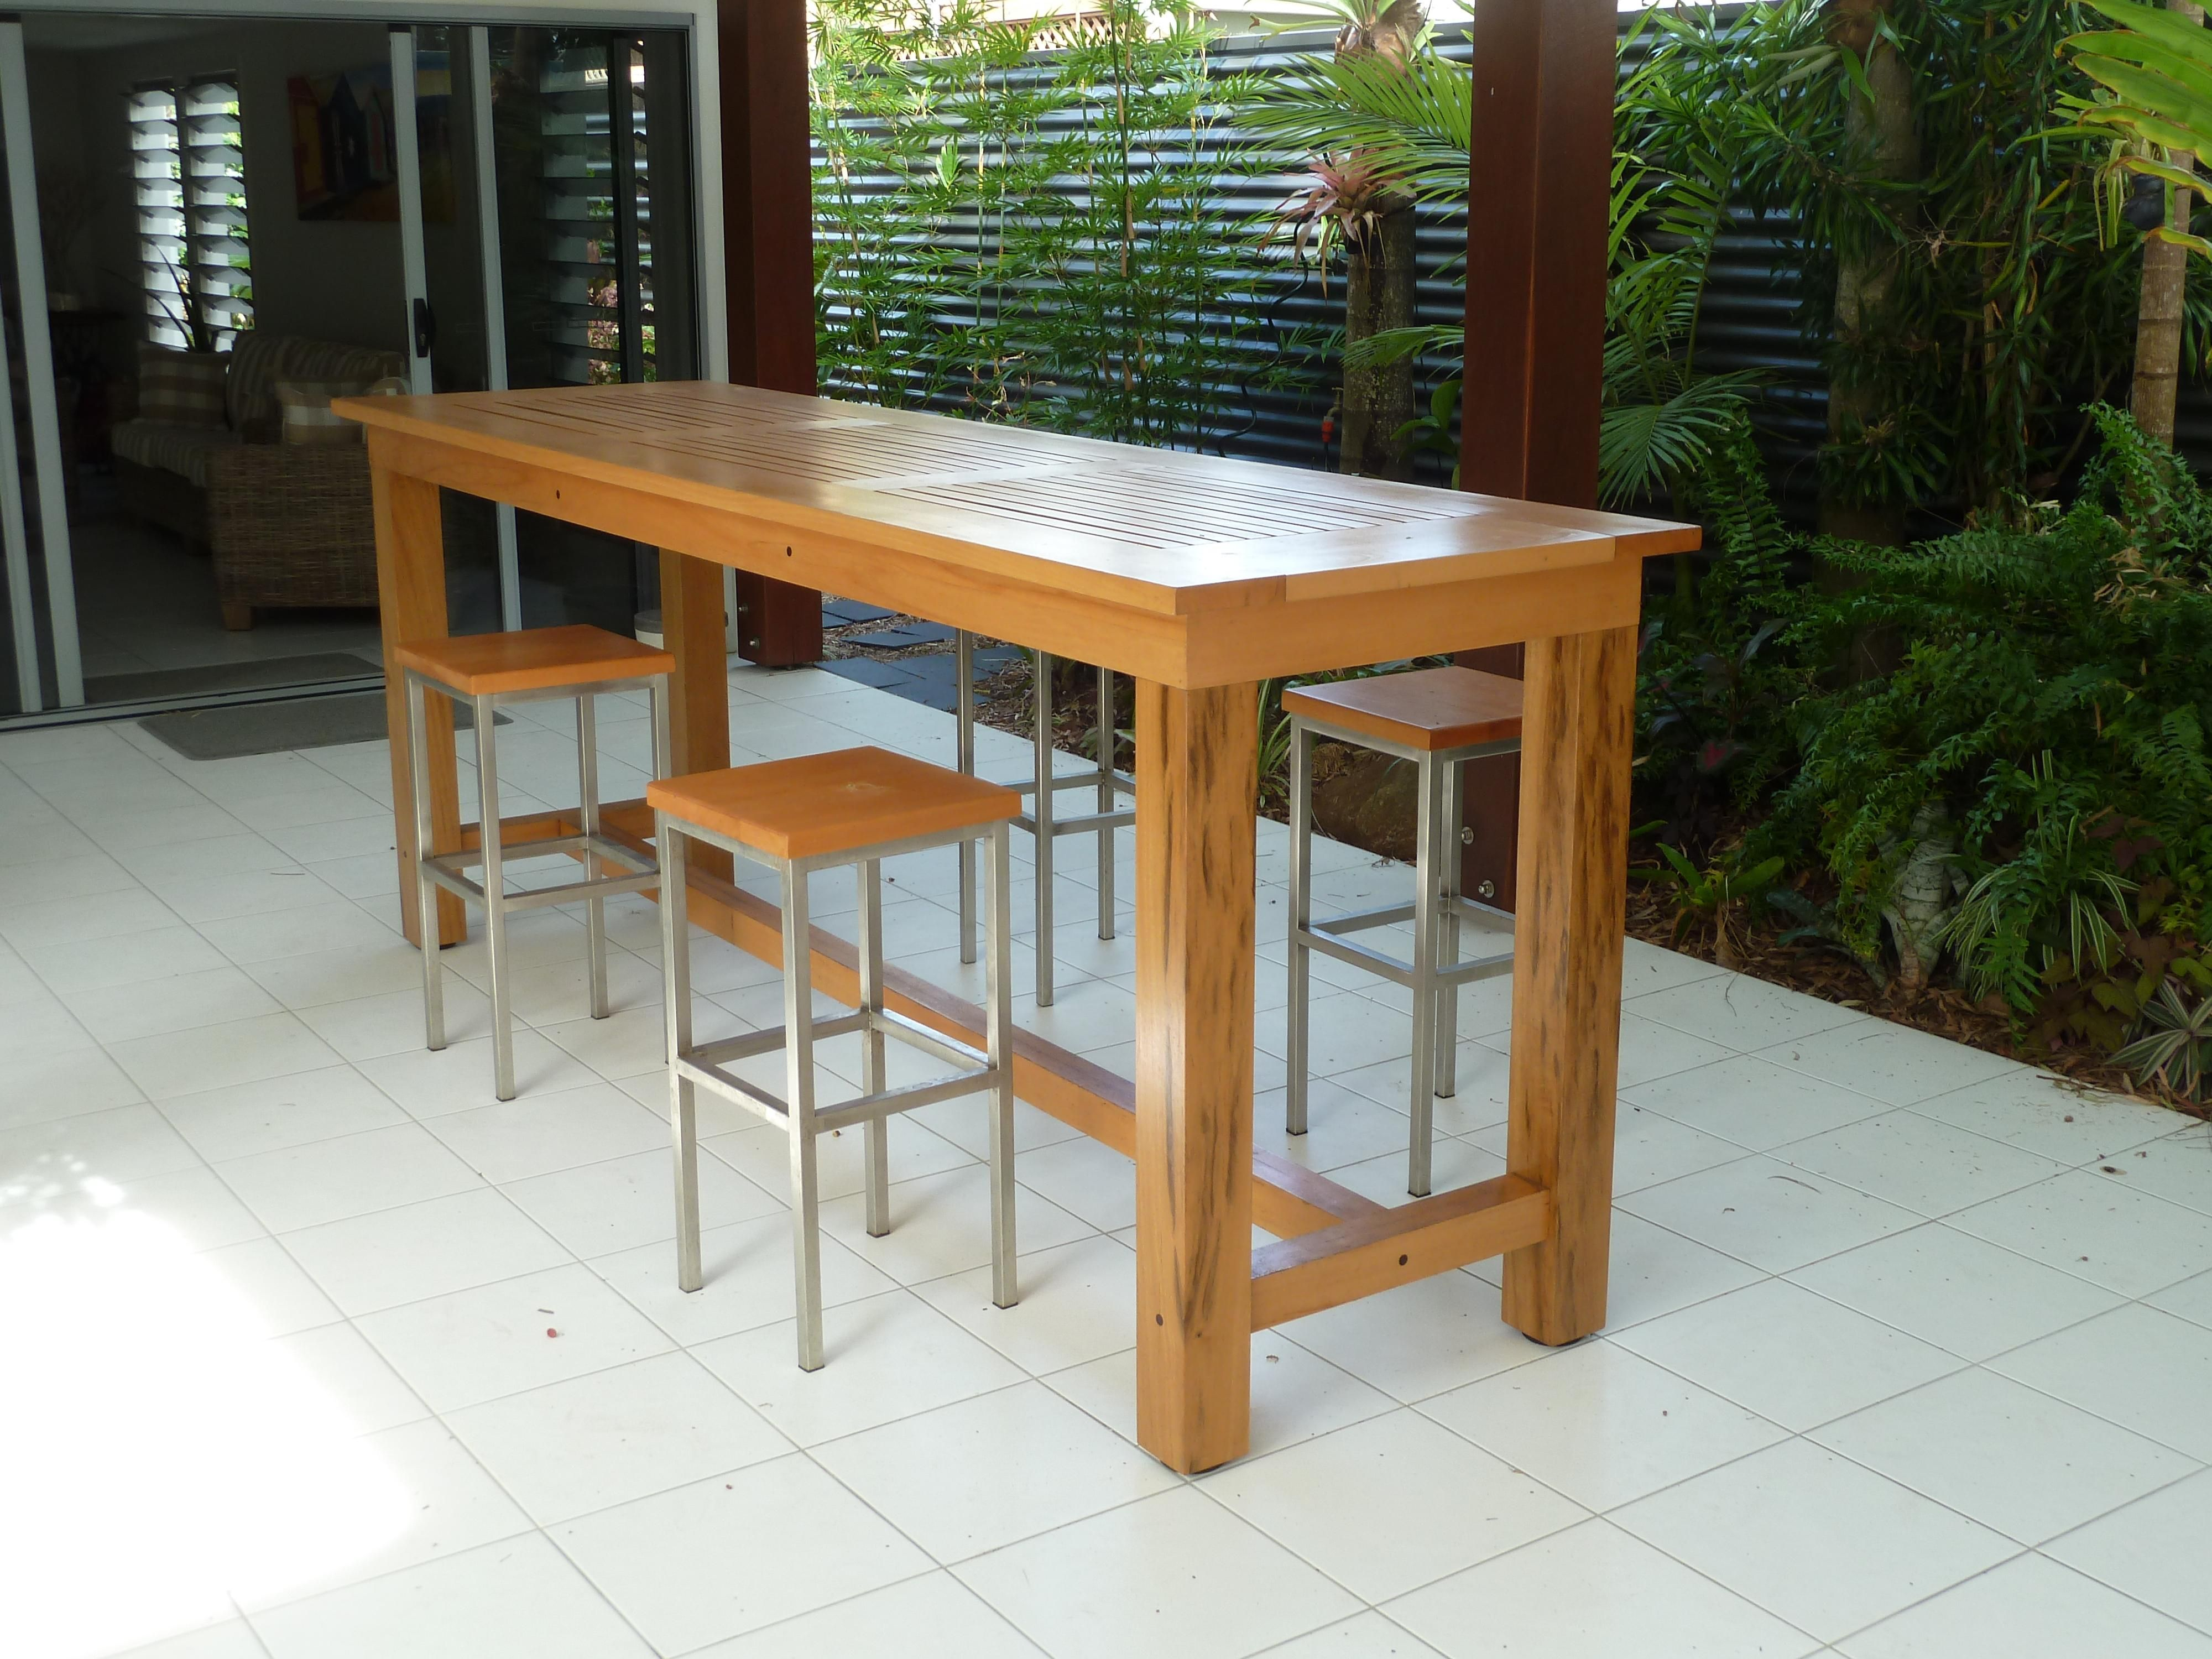 outdoor bar table outdoor bar designs | outdoor: bar table and stools, outdoor table and WYQCLLM